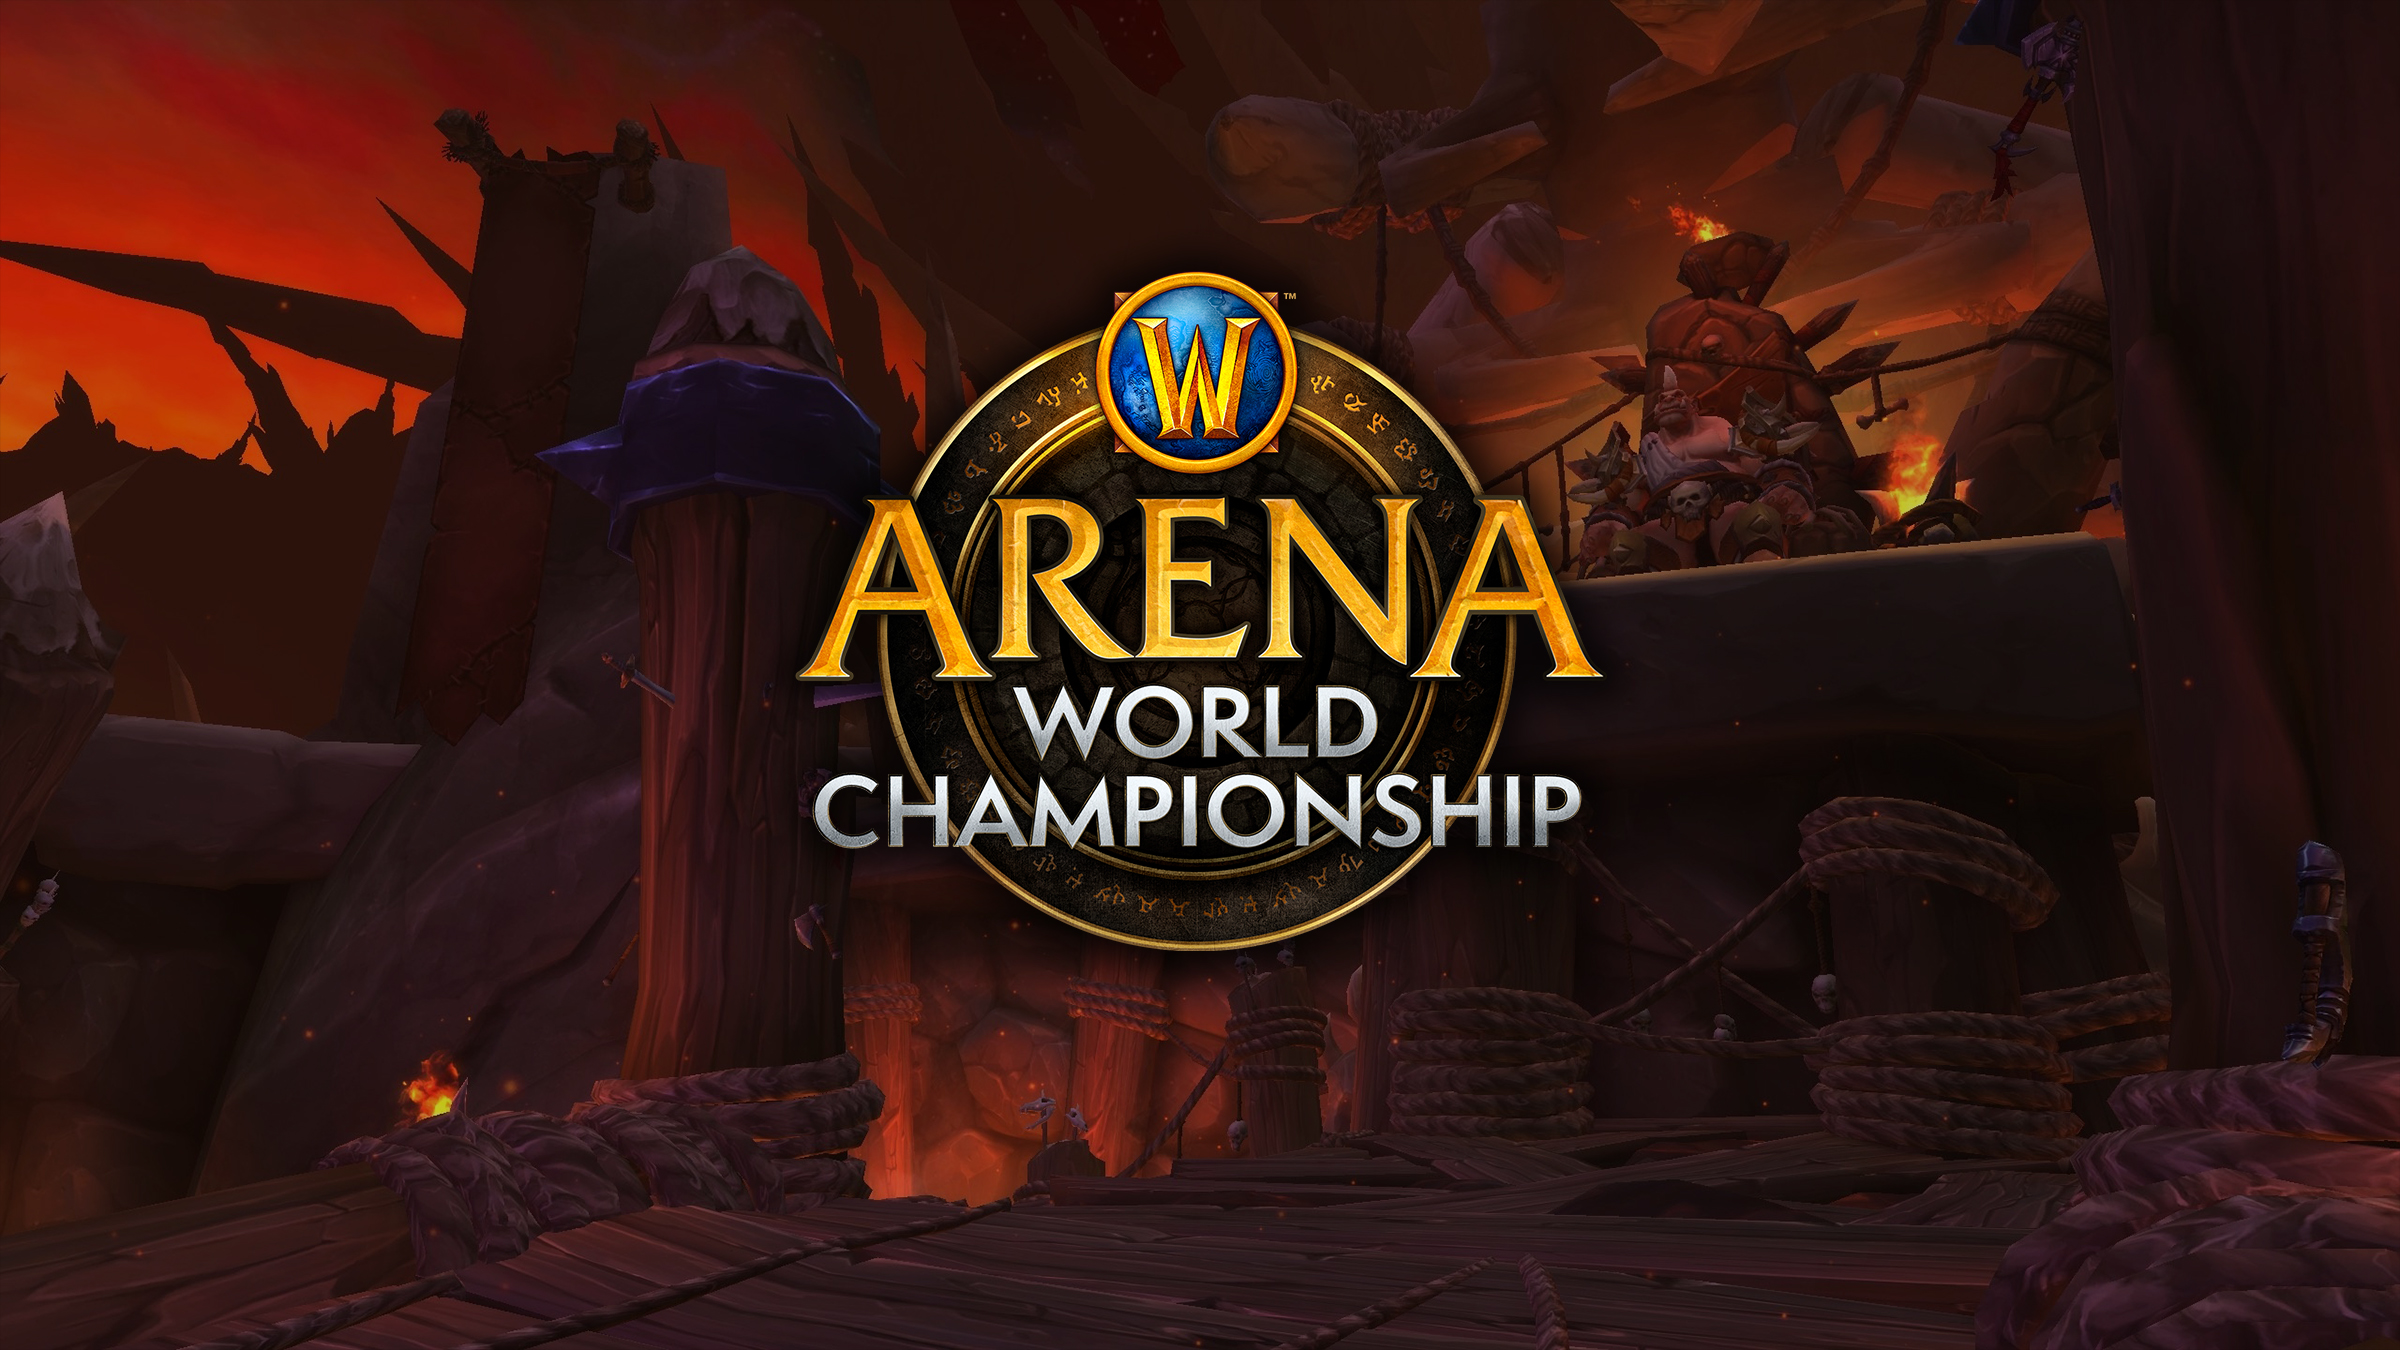 Tune In June 16–17 for the WoW Arena World Championship: North American Qualifier Cup 3